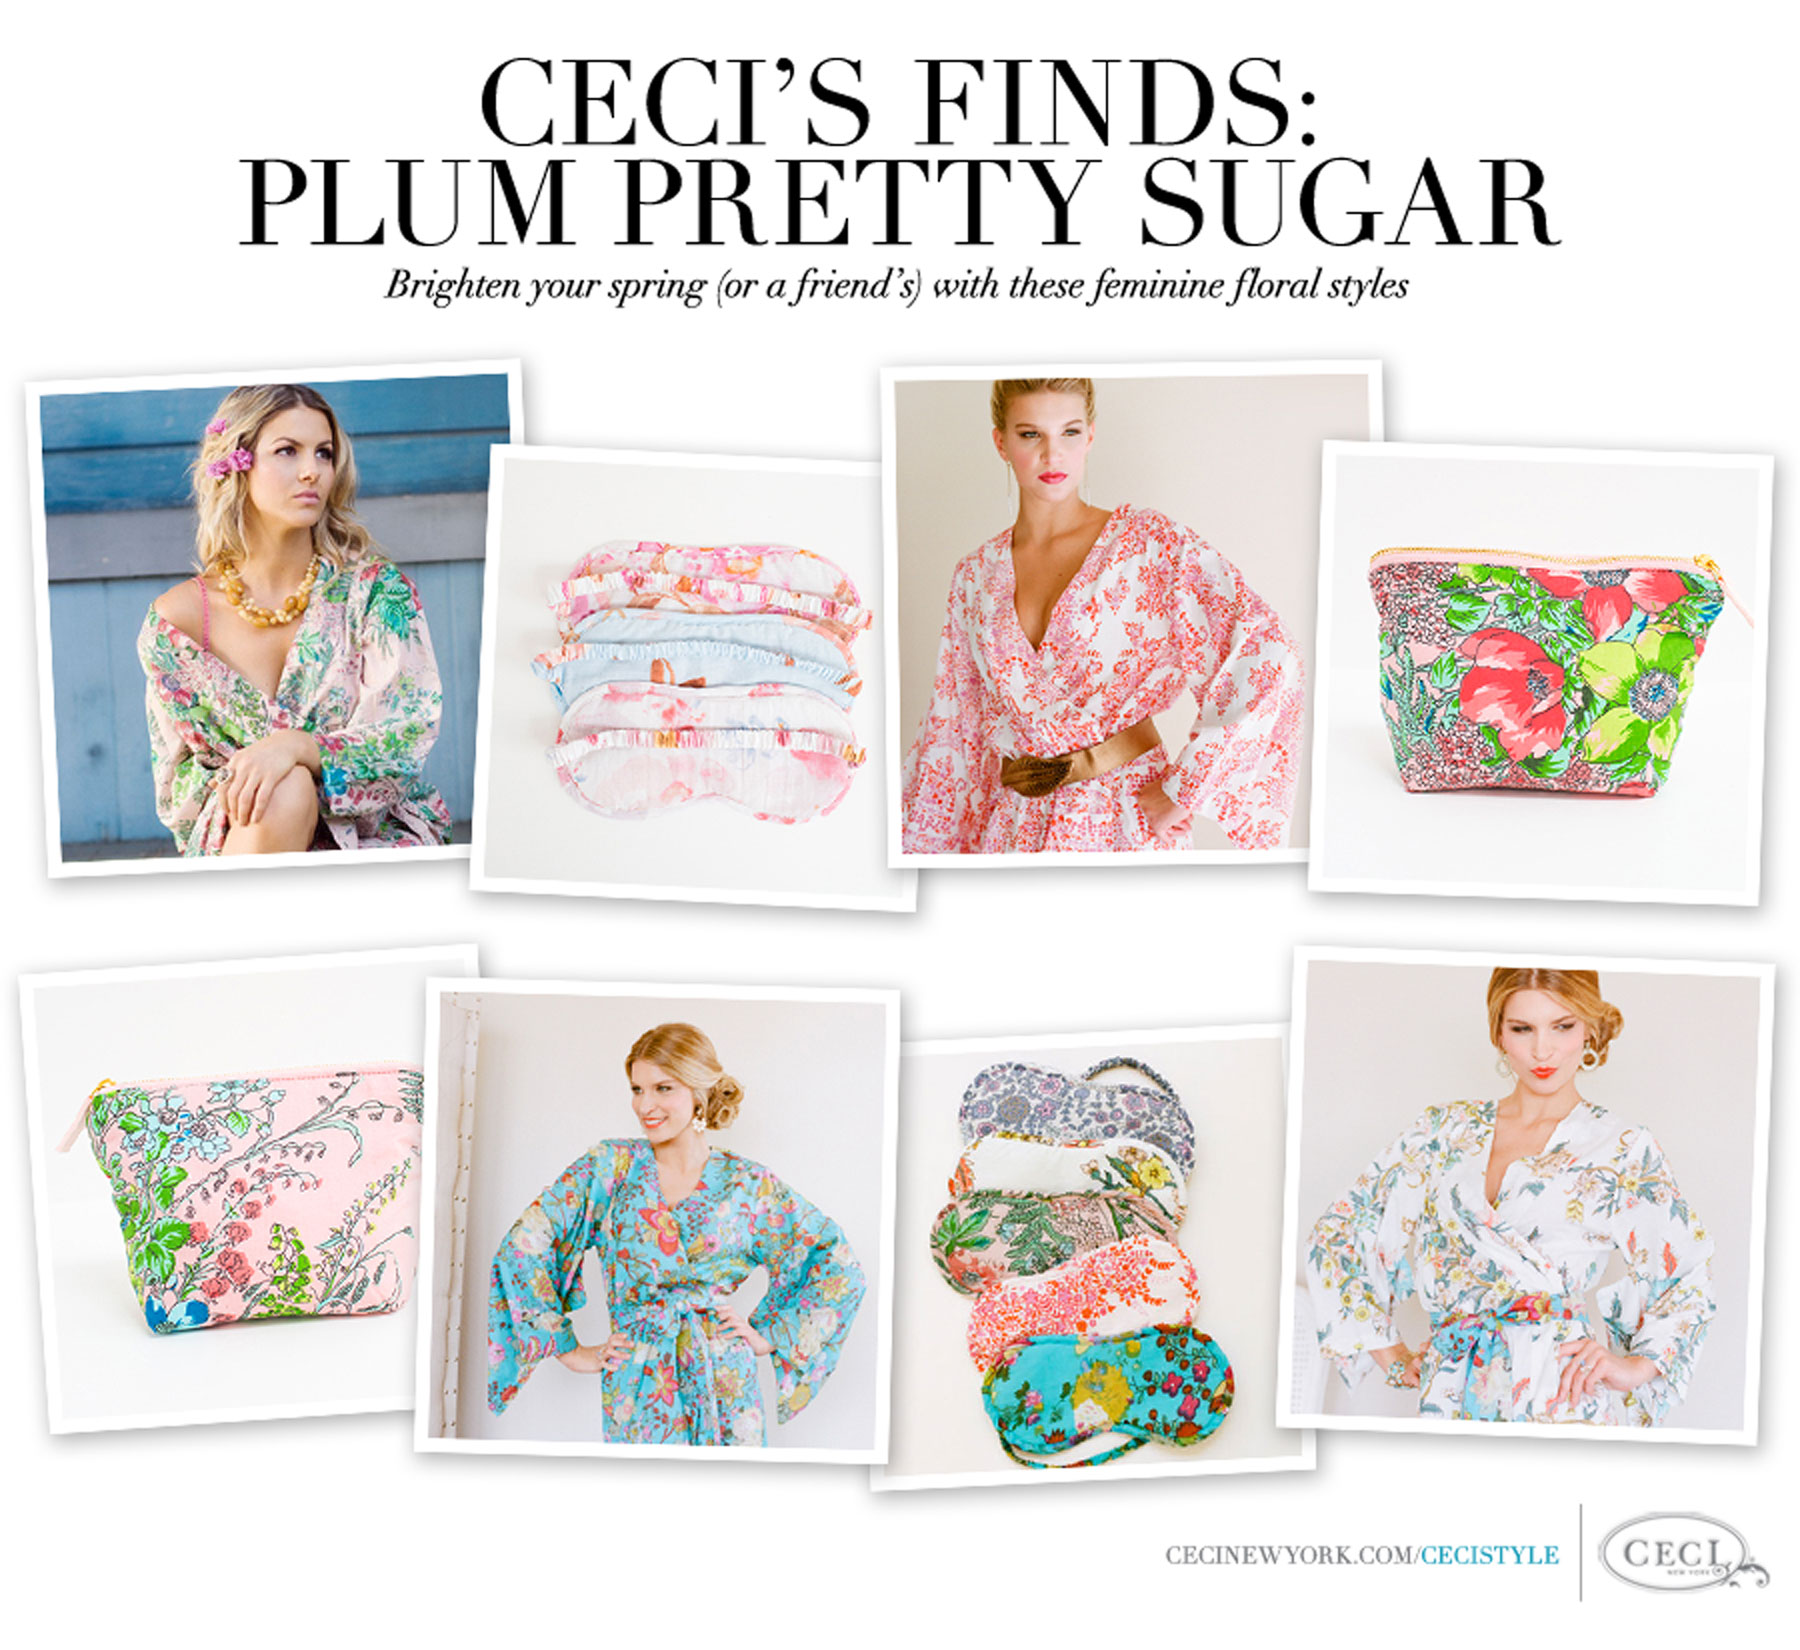 Ceci's Finds: Plum Pretty Sugar - Brighten your spring (or a friend's) with these feminine floral styles